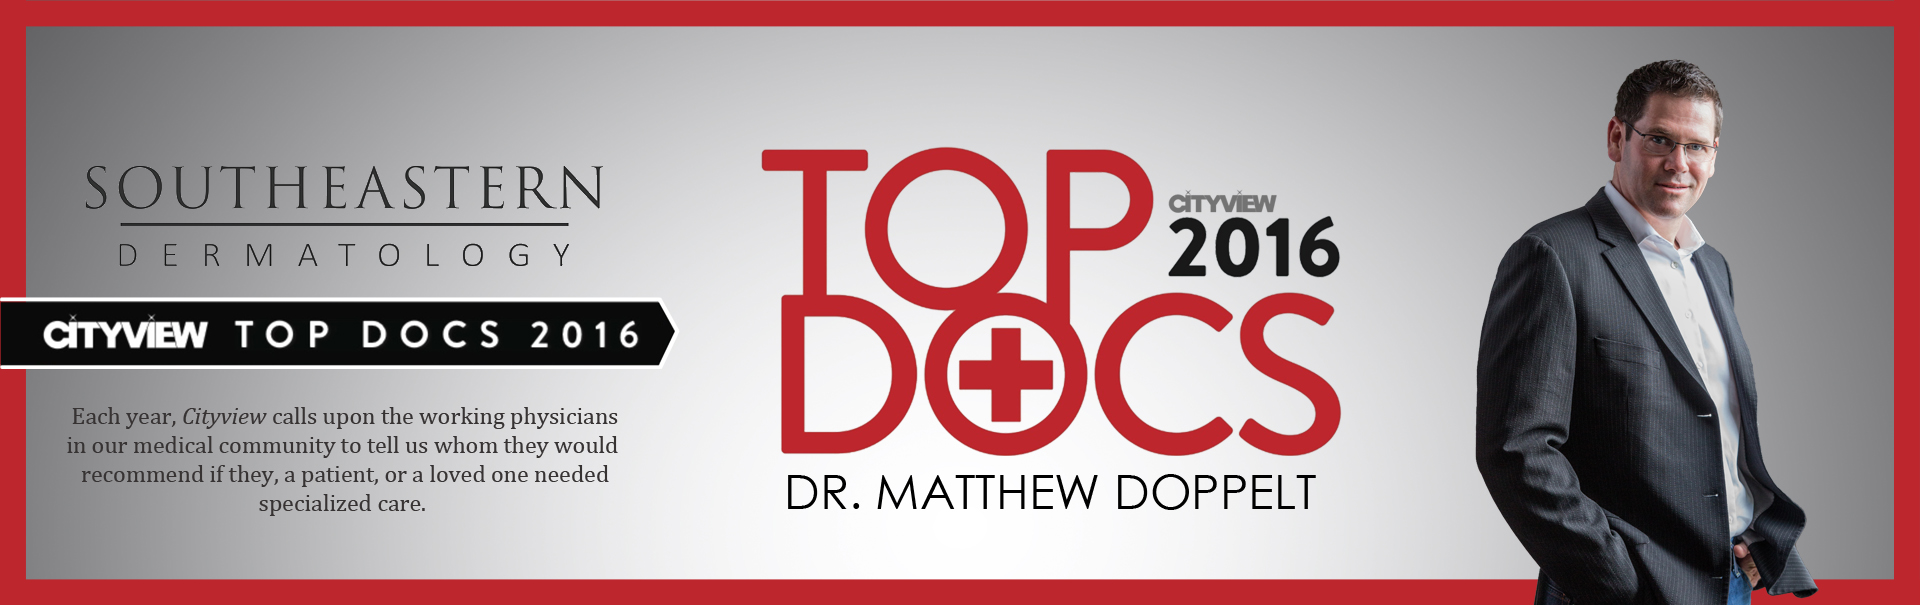 knoxville top doctor